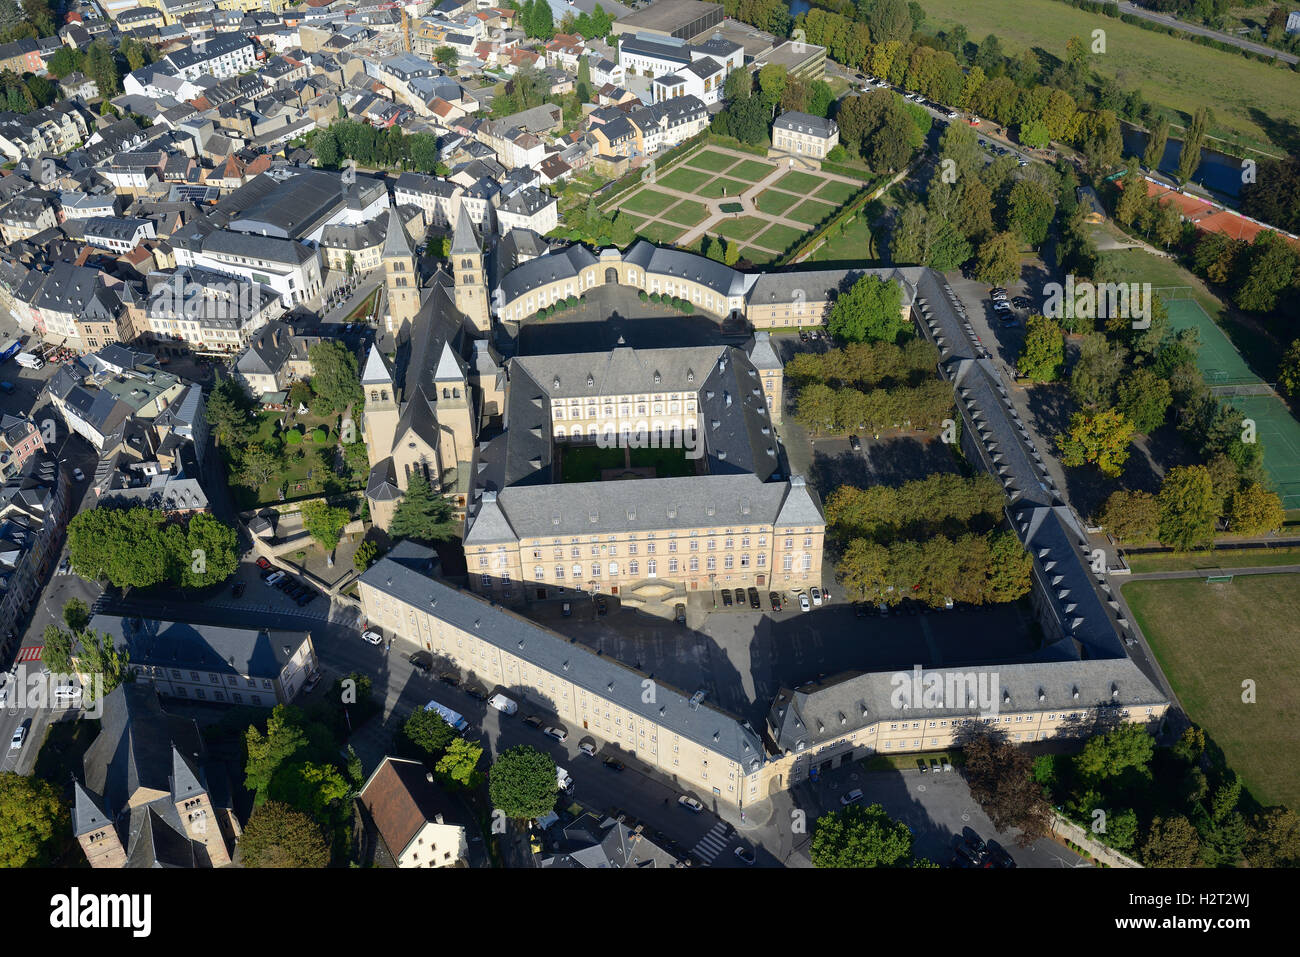 ECHTERNACH ABBEY (aerial view). District of Grevenmacher, Luxembourg. - Stock Image